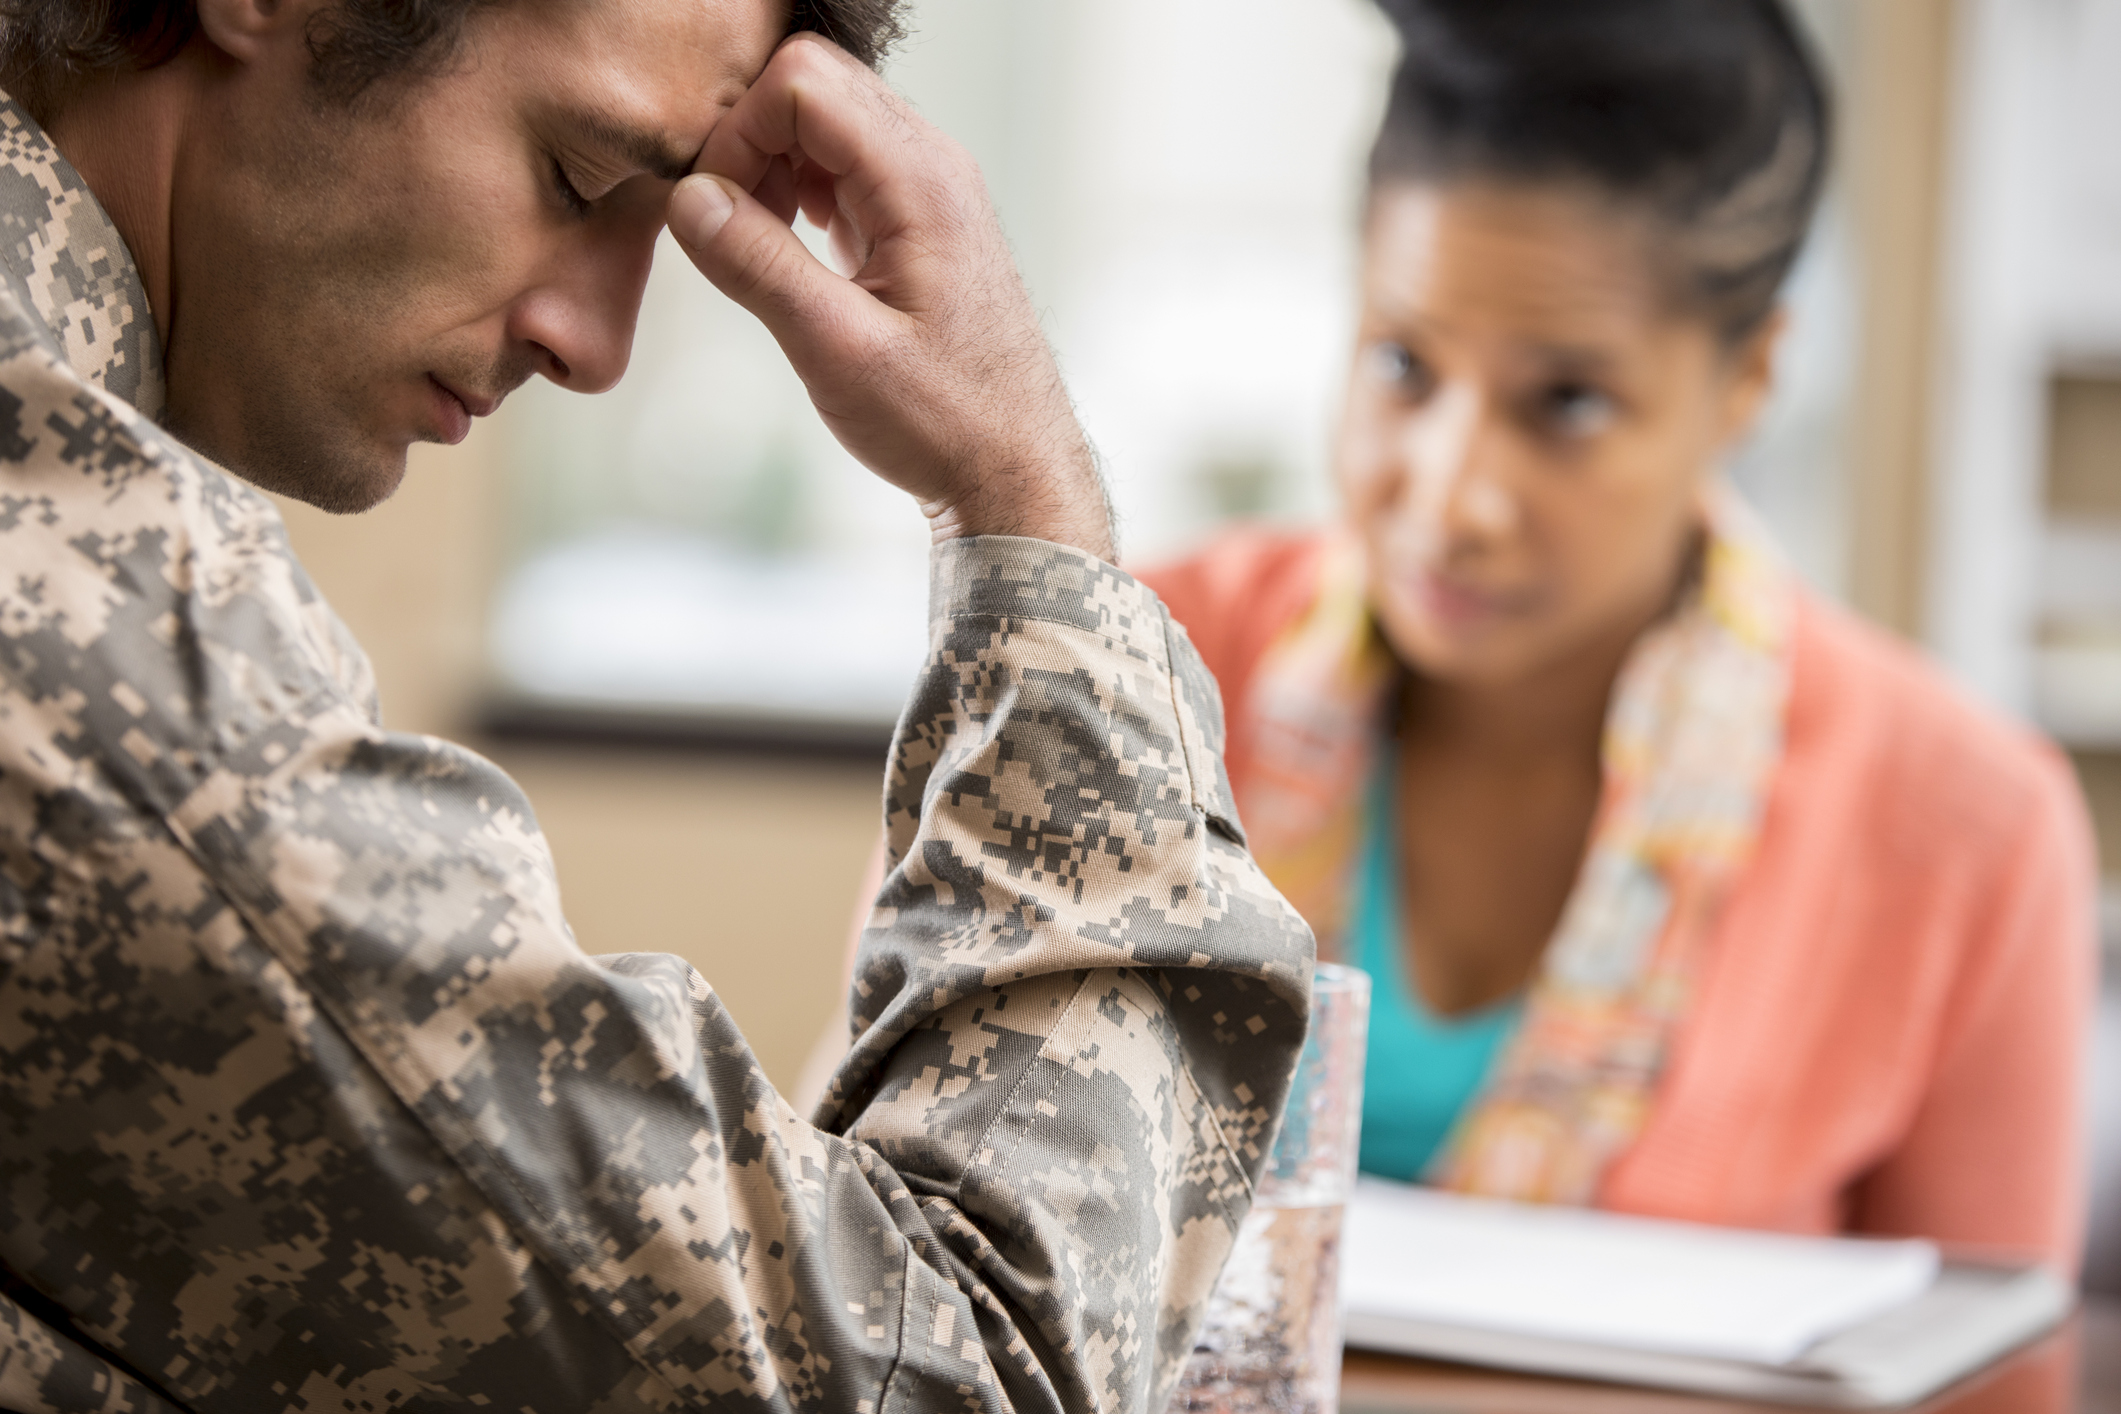 Depressed veteran meets with psychologist.